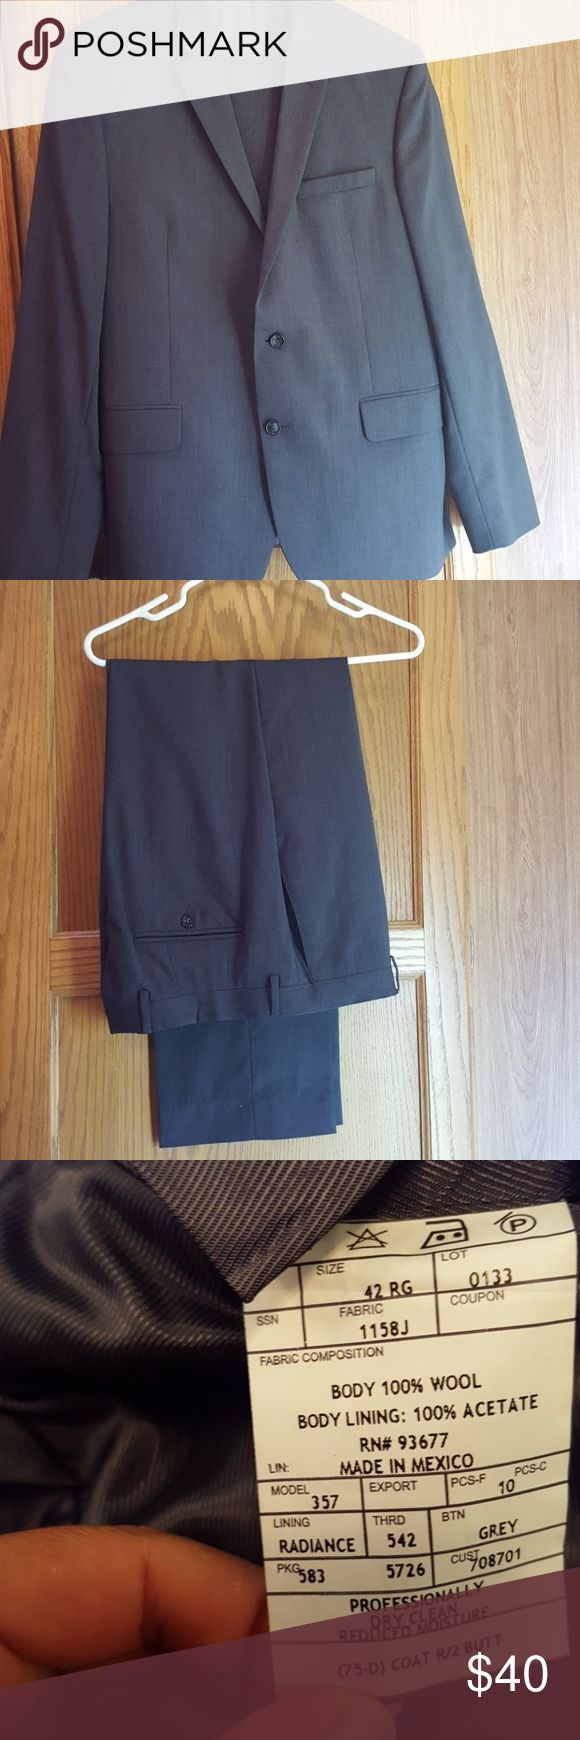 CLAIBORNE SLIM FIT SUIT This suit is like new, and in EXCELLENT condition. Only worn ONCE. Size 42R blazer. 34W 30L pant. Pants are Flat front. No cuff on pant hem. 2 back pockets, 2 front pockets. Blazer has 3 outside pockets, 4 inside pockets. Color is charcoal gray. No stains or odors. No markings of any kind. No rips or tears. No missing buttons. EXCELLENT condition. Smoke free/pet free home. REASONABLE offers considered. Check out my other men's and women's items listed! *also available…